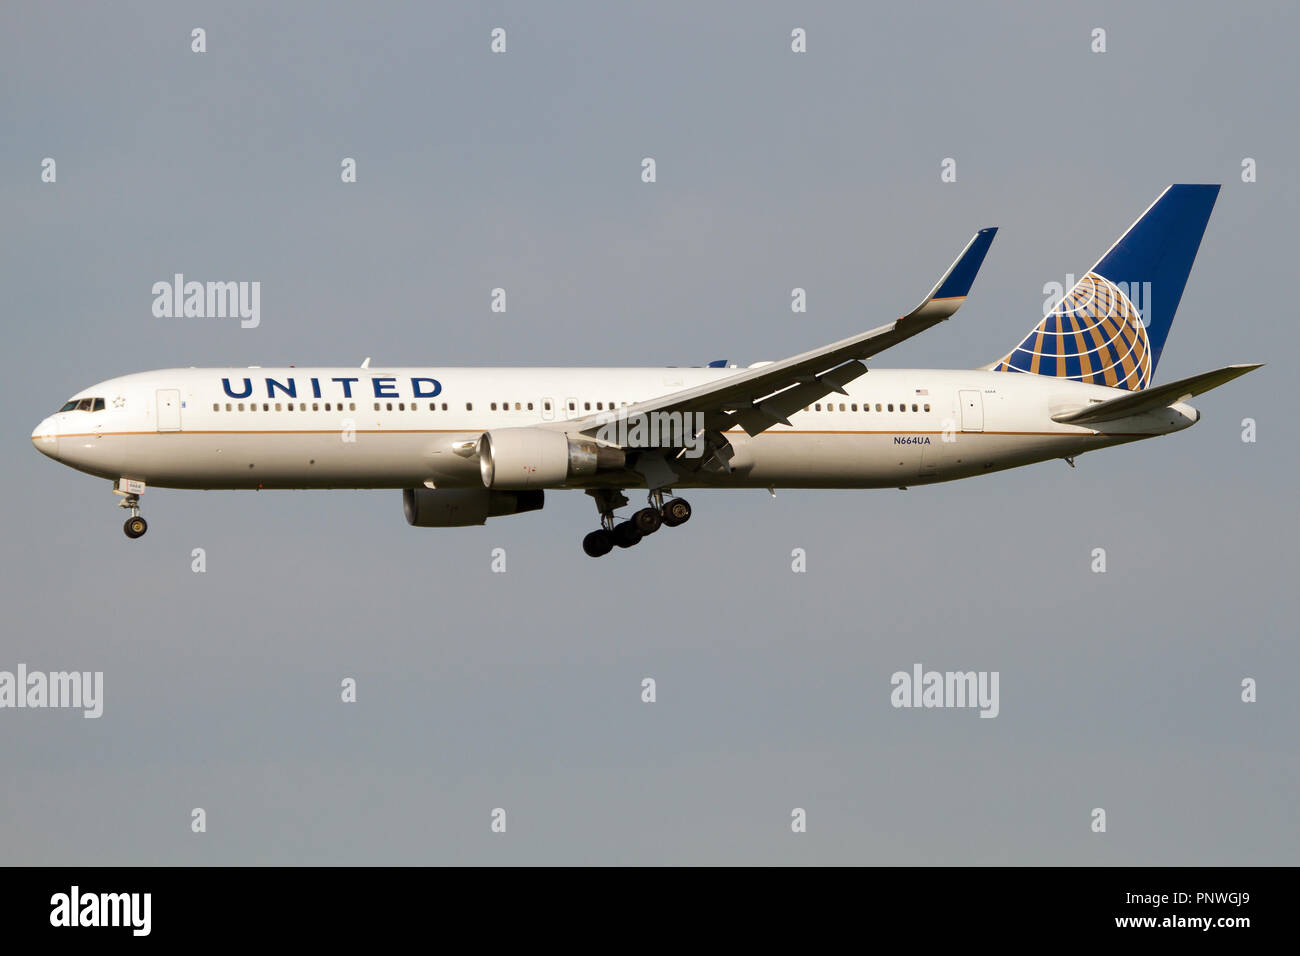 United Airlines Boeing 767-300ER lanfing at Rome Fiumicino airport - Stock Image